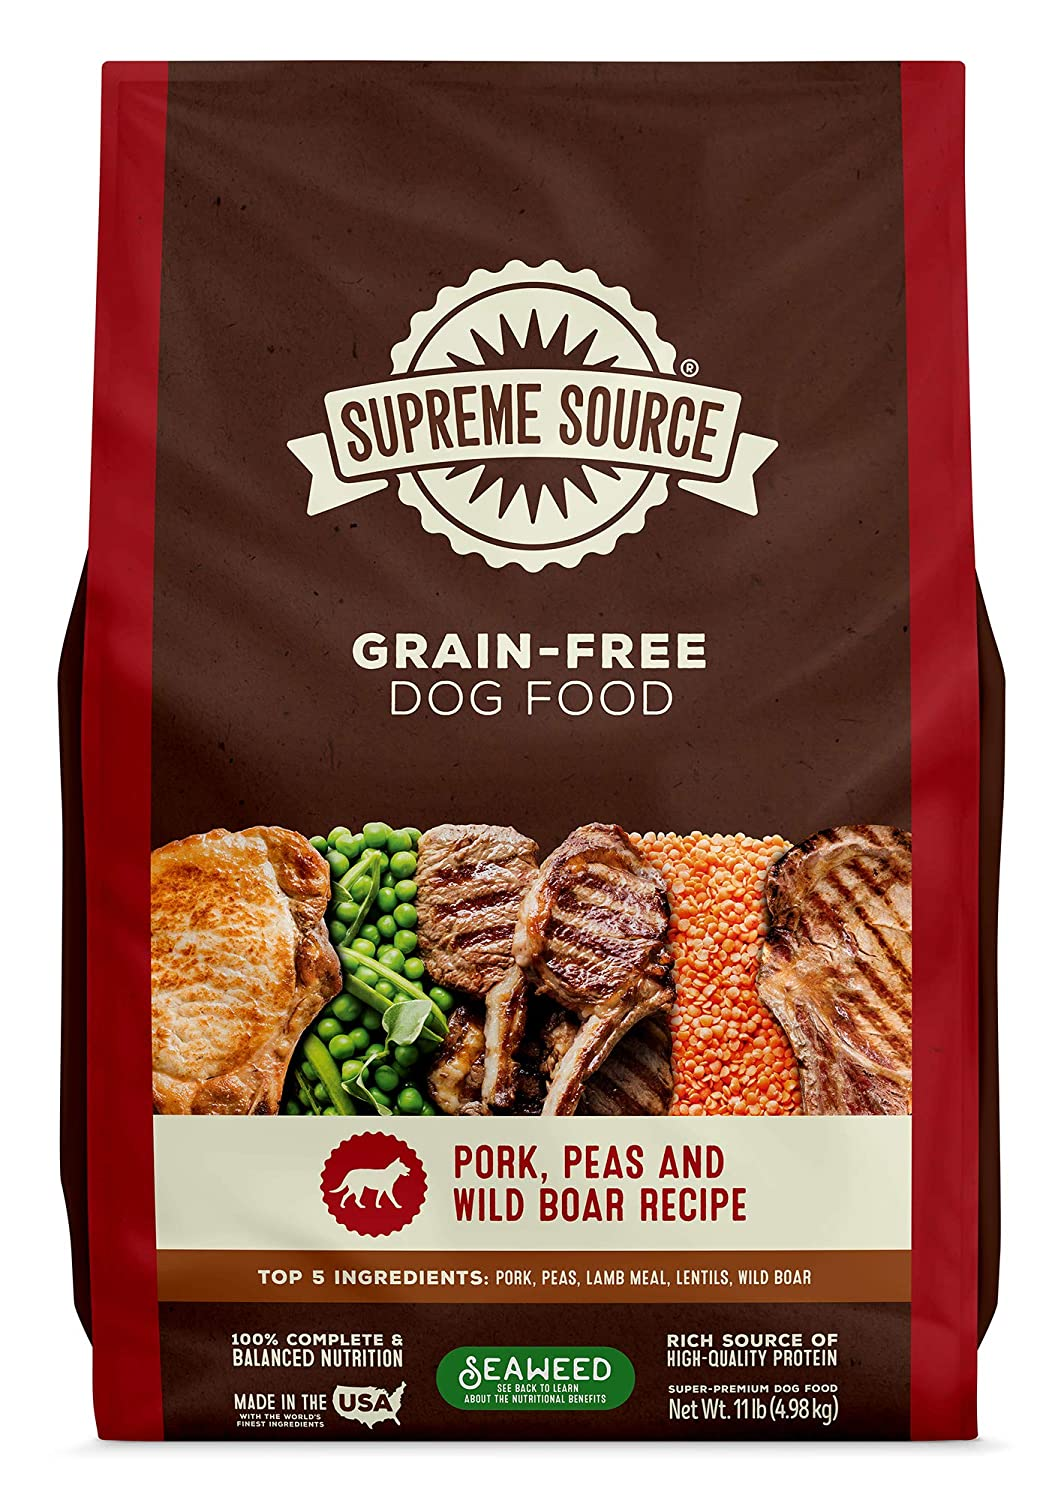 Supreme Source Premium Dry Dog Food, Grain Free, USDA Organic Seaweed, Protein, Pork Peas & Wild Boar Recipe for All Life Stages. Made in The USA.